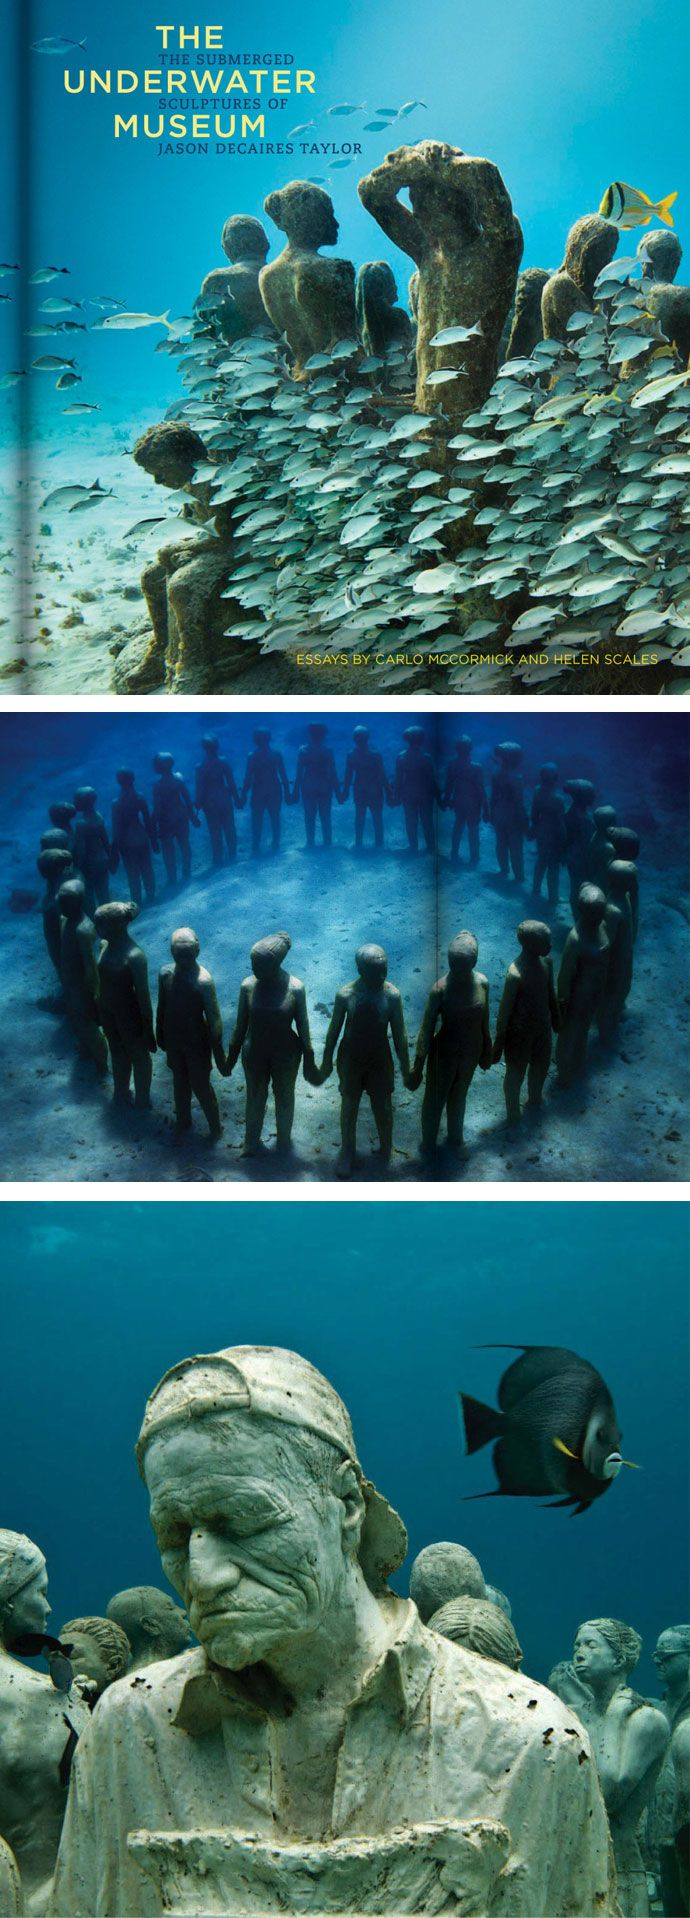 A one-of-a-kind blend of art, nature, and conservation, The Underwater Museum re-creates an awe-inspiring dive into the dazzling under-ocean sculpture parks of artist Jason deCaires Taylor. Ocean enthusiasts, divers, art lovers, and anyone entranced by the natural world will be instantly engrossed by this pearl of a book. #colossal